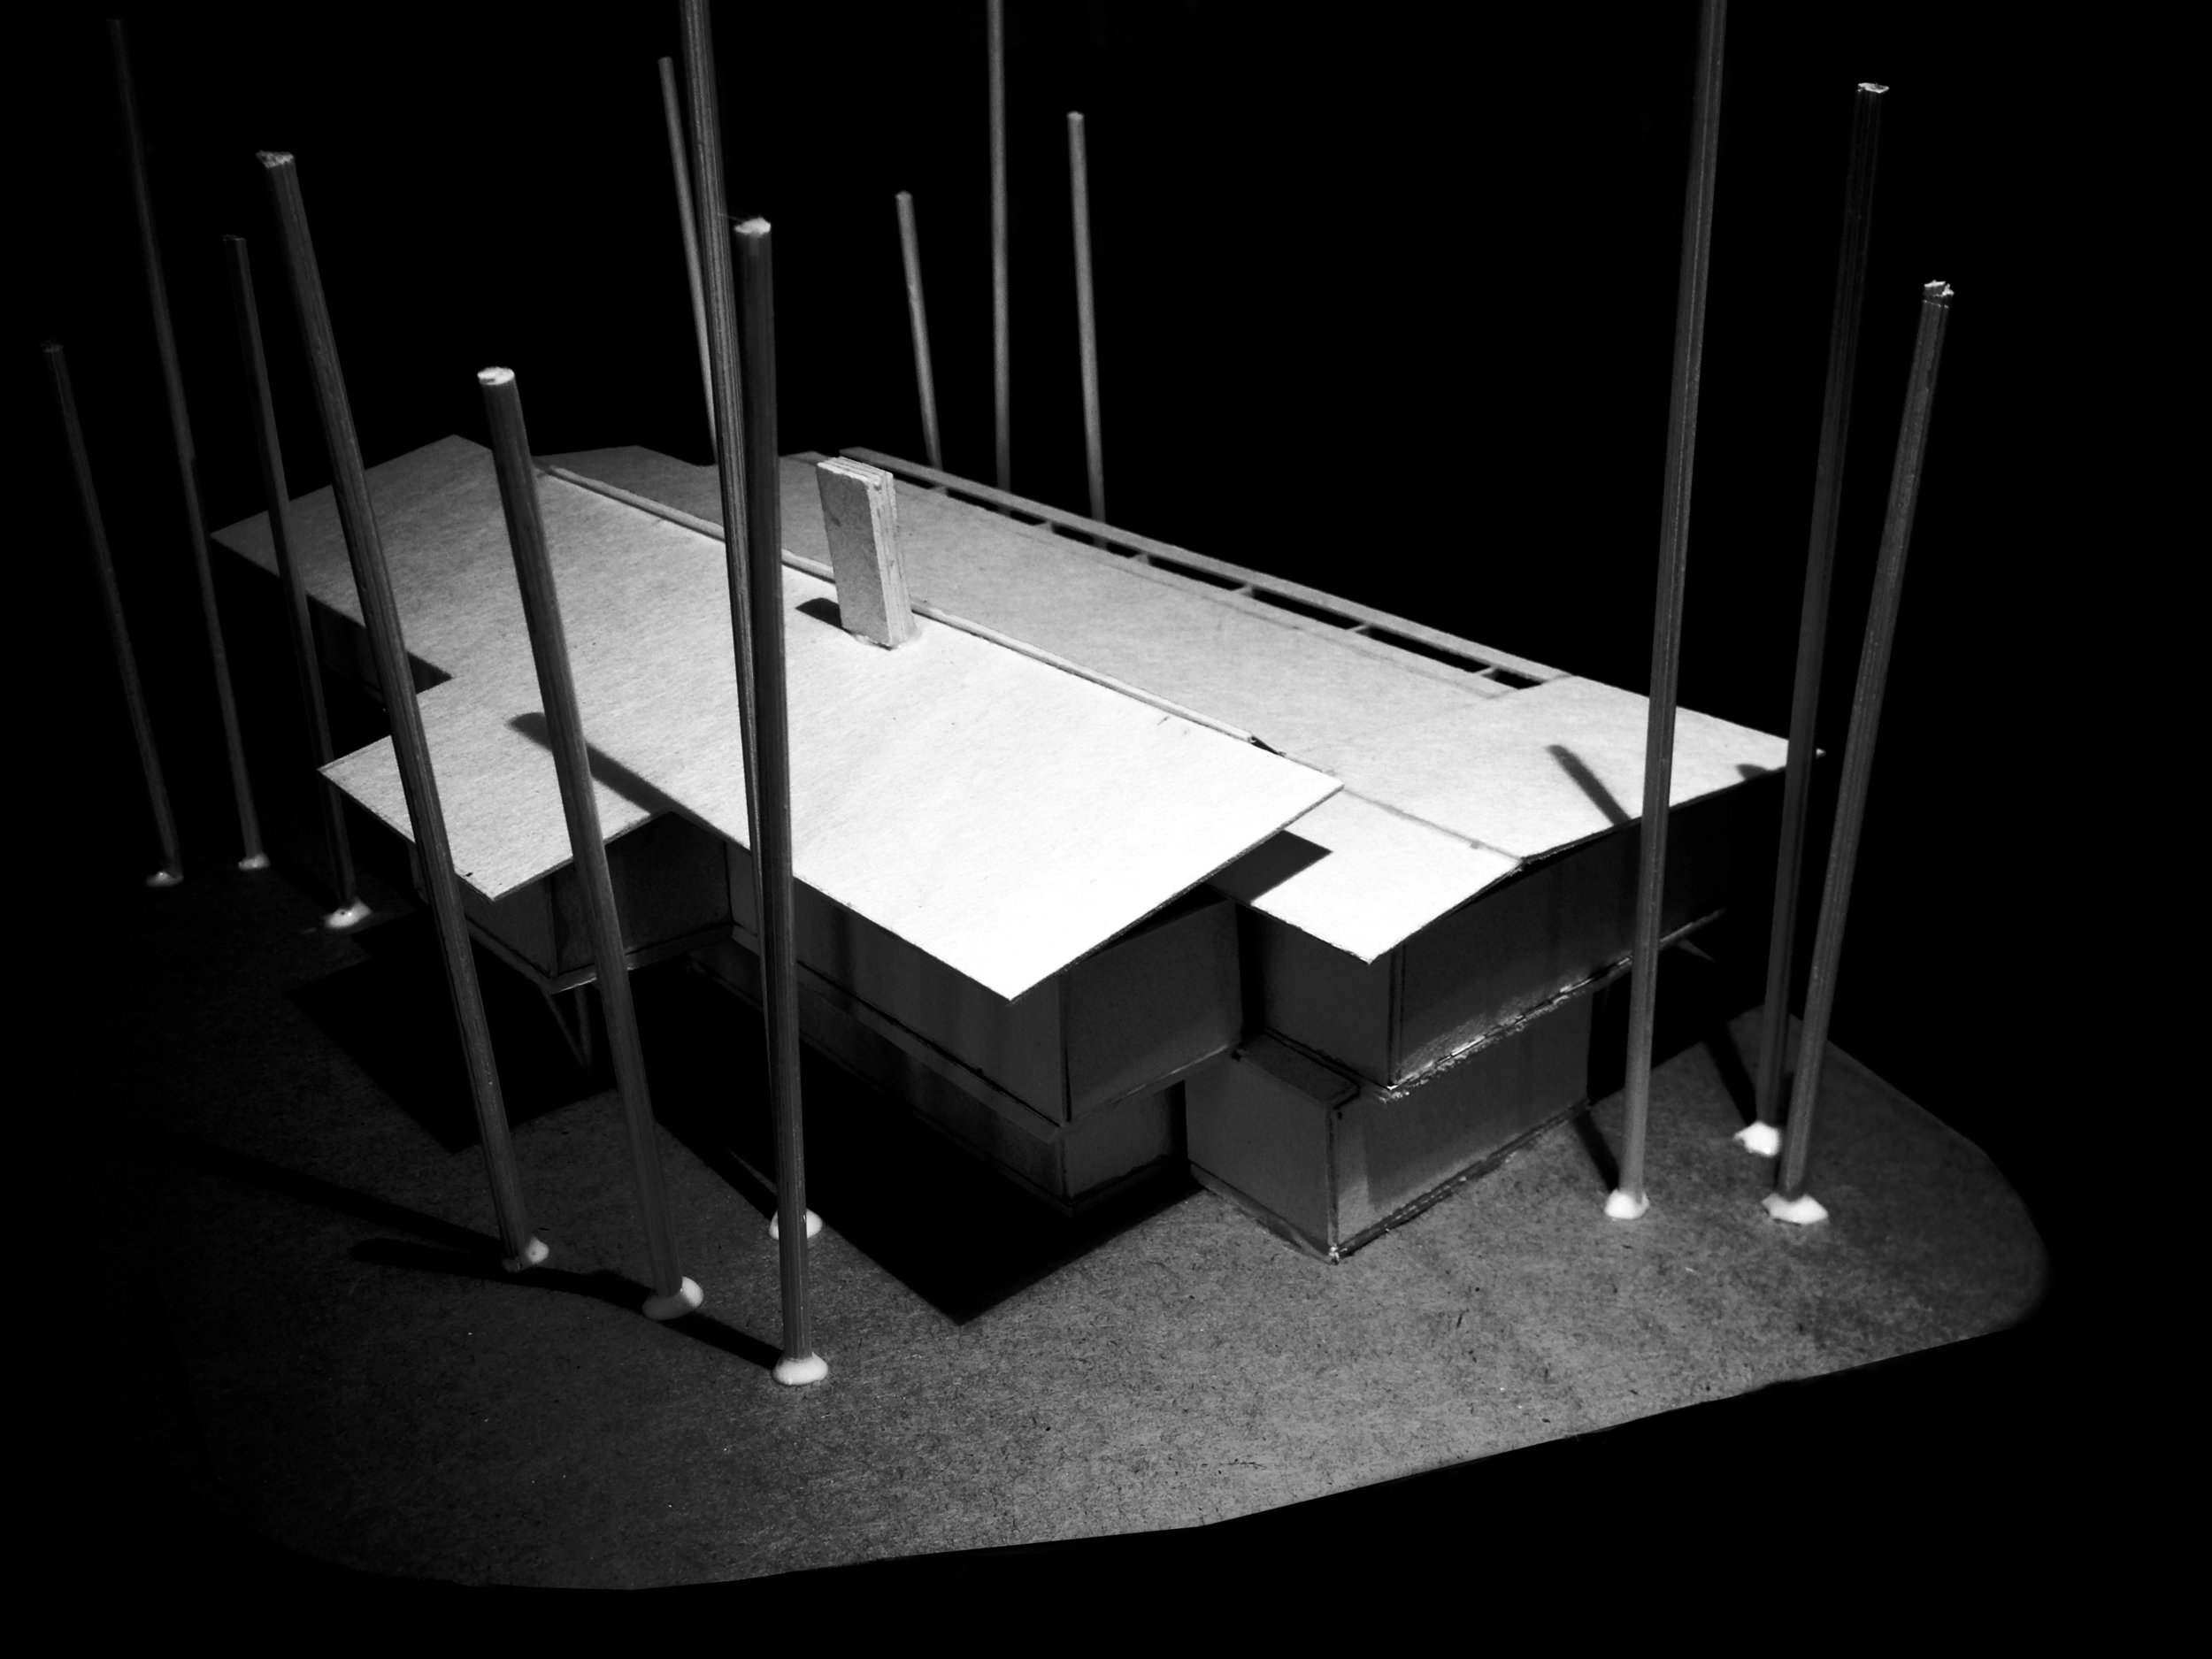 2 Storey Building design model -  South End Looking North